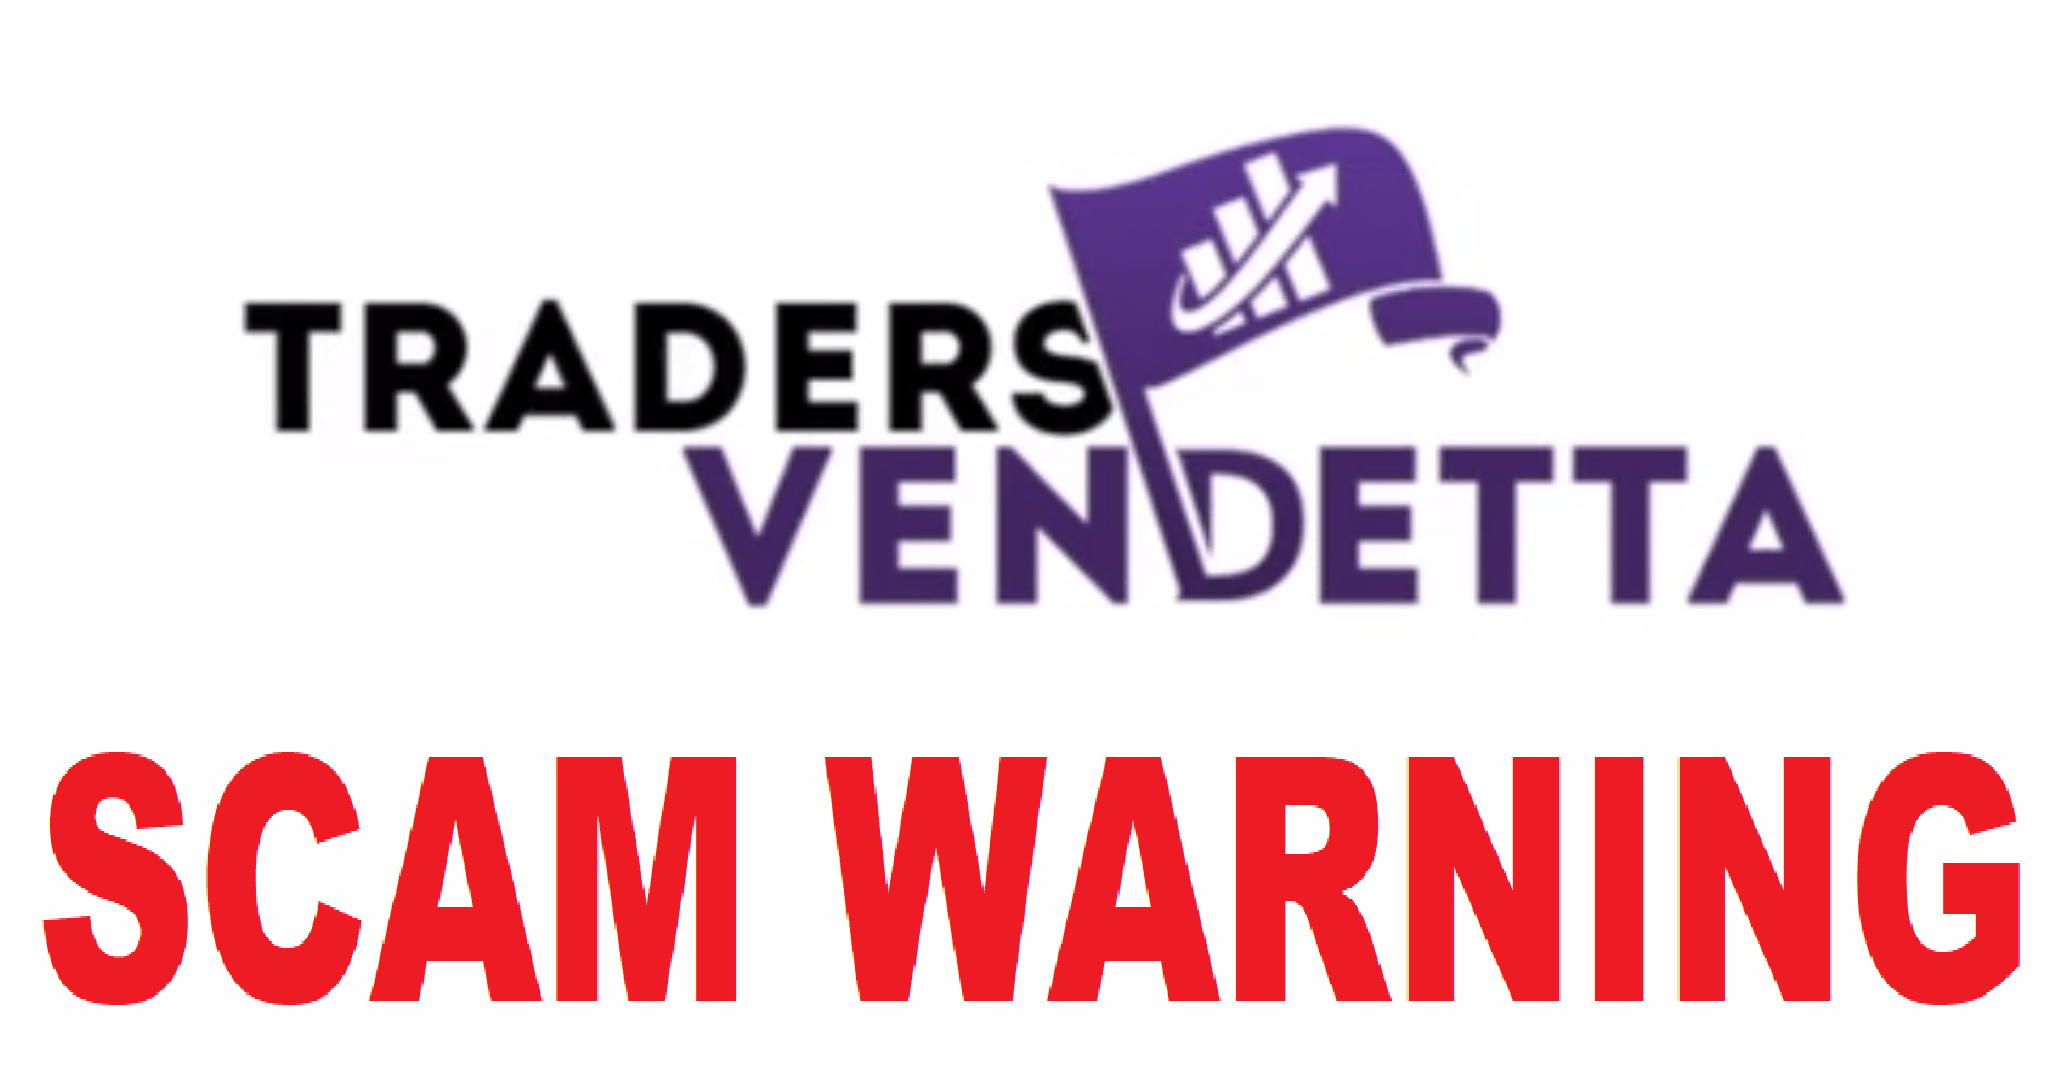 Traders Vendetta